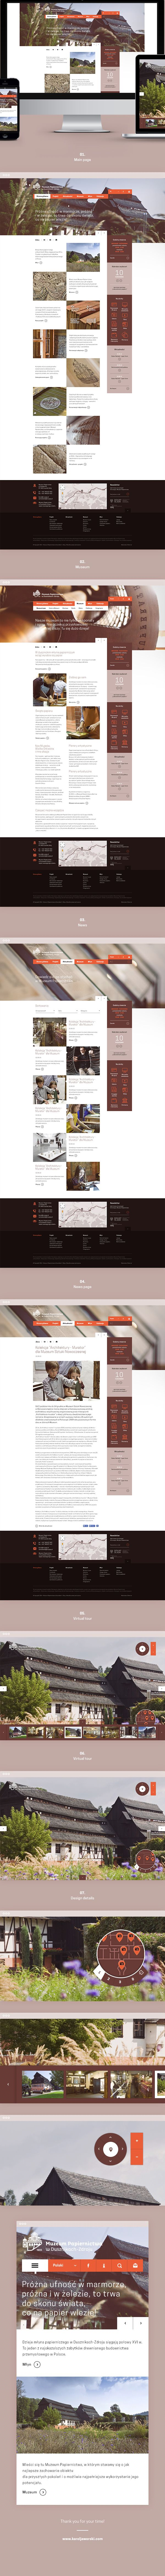 Web design for The Museum of Papermaking in Duszniki Zdrój, Poland.